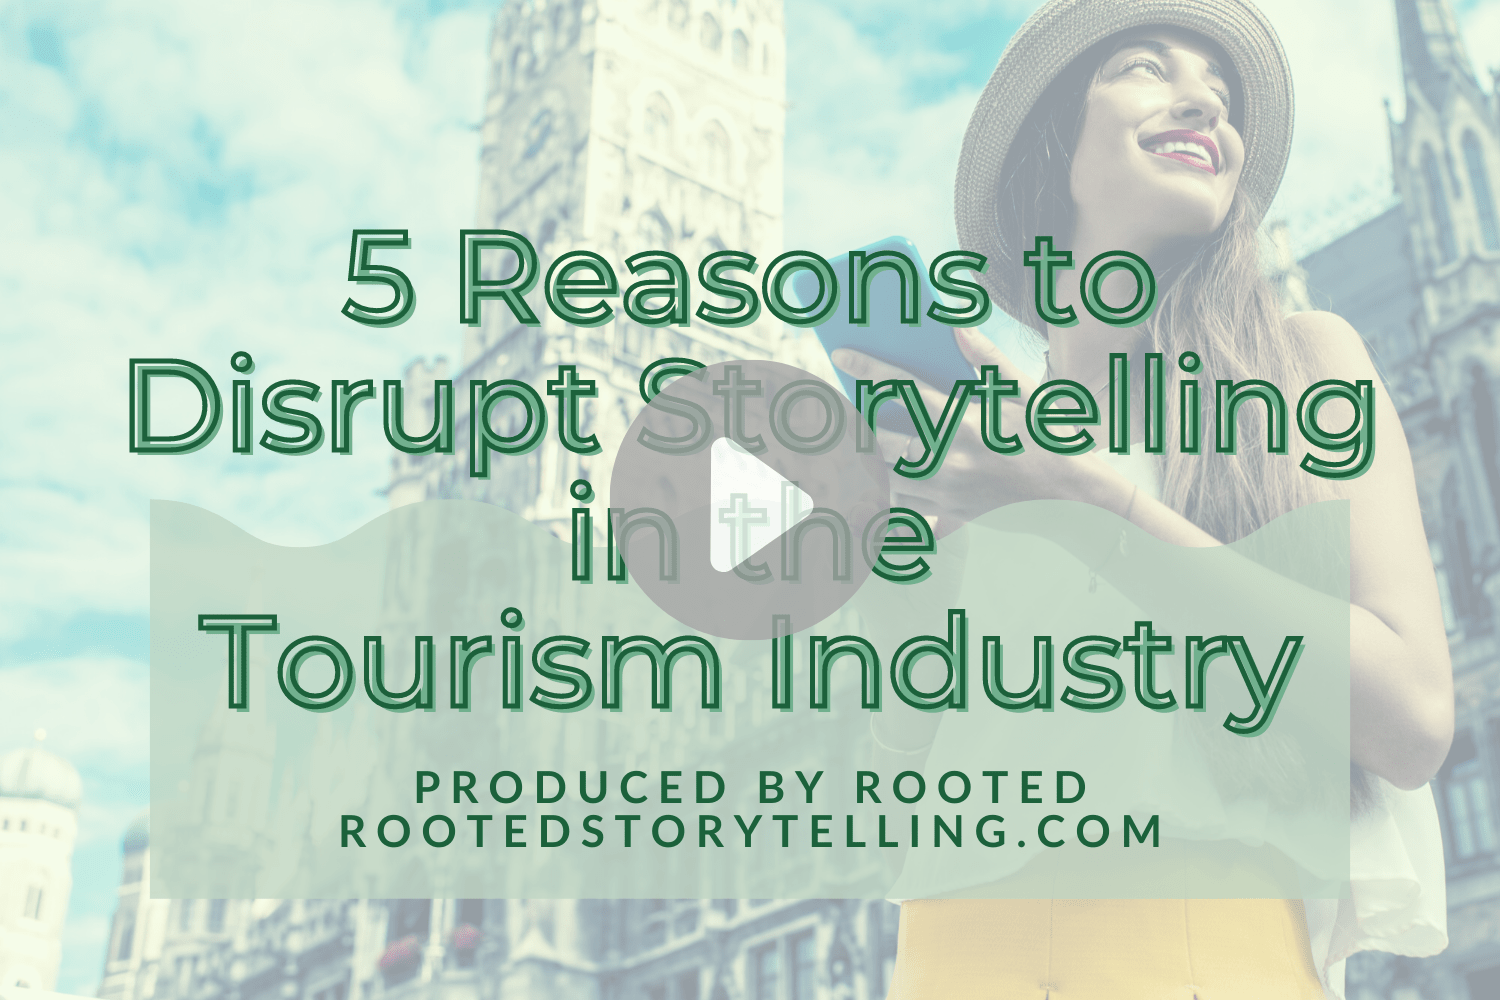 Storytelling Tourism Industry